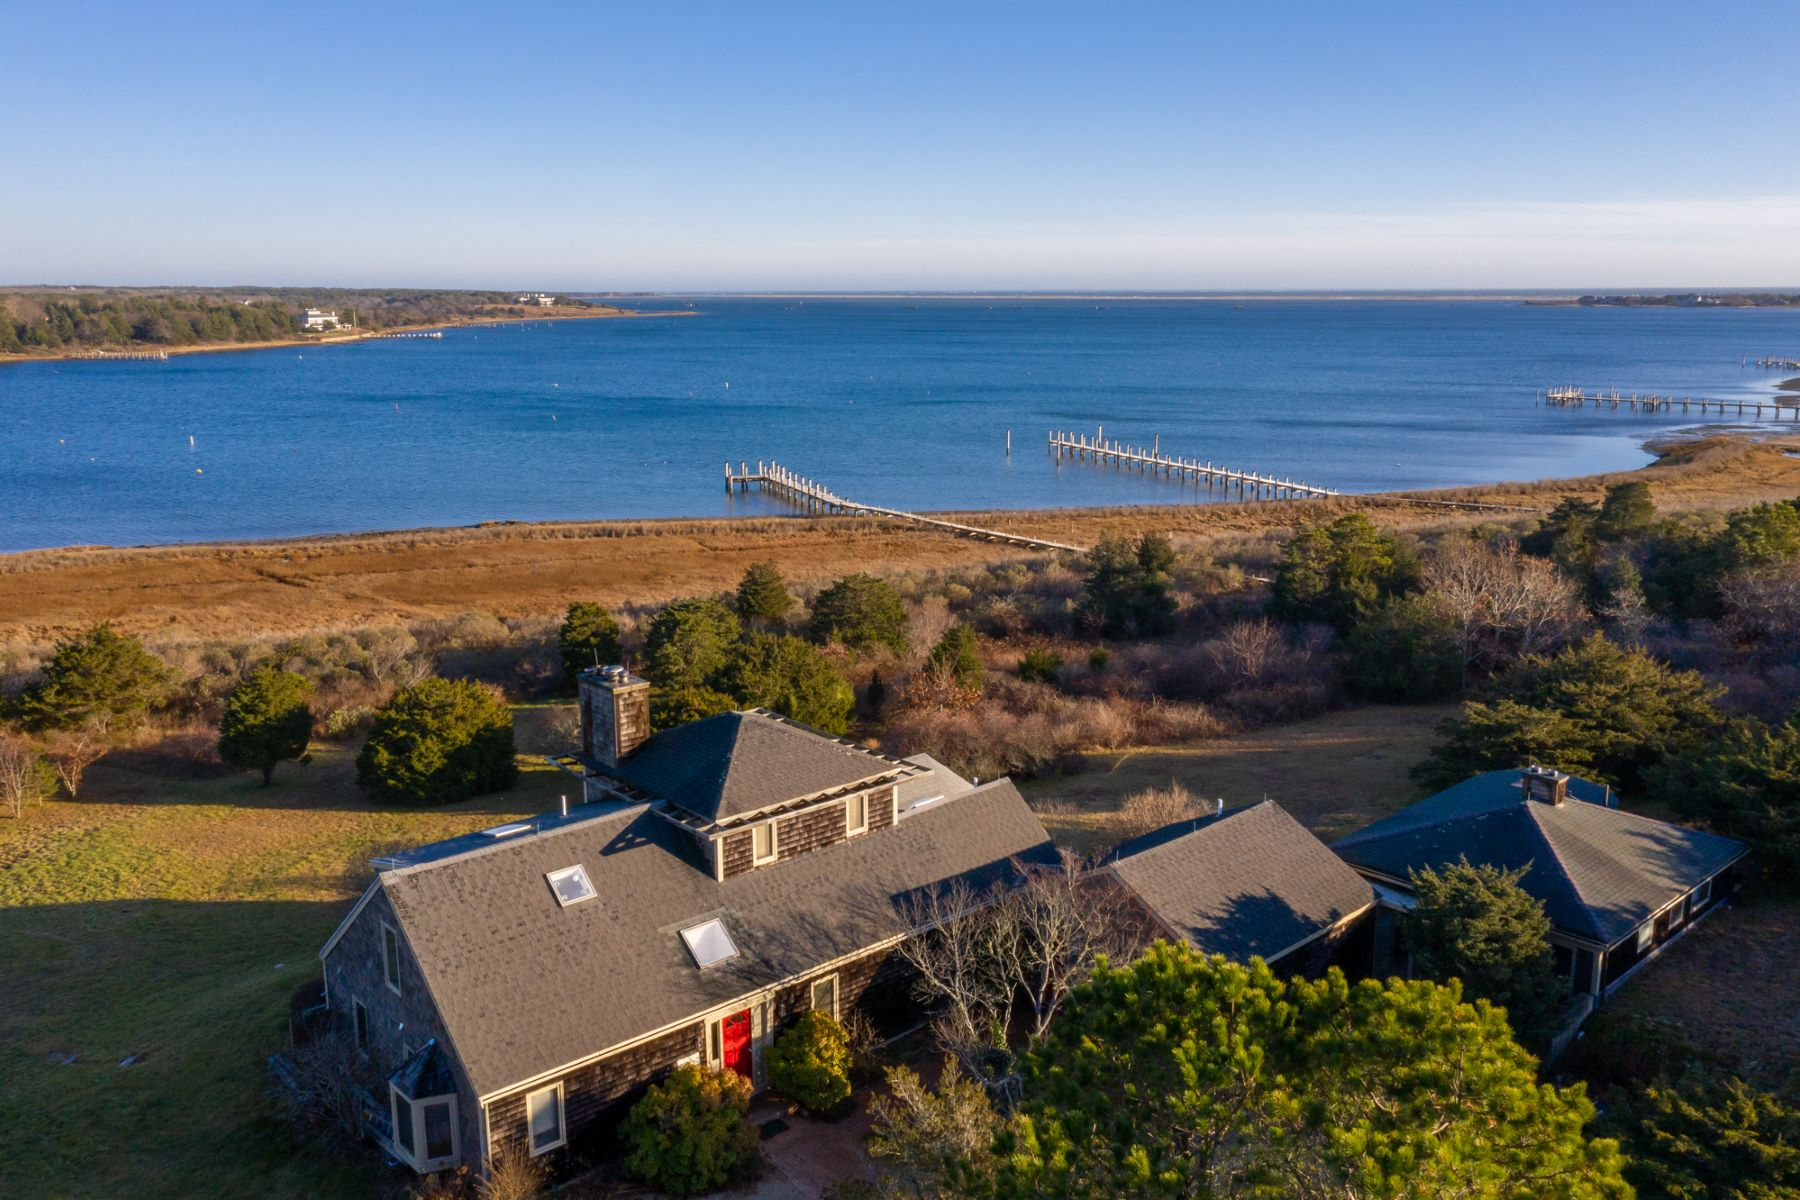 Single Family Home for Active at Waterfront house and guest house on Katama Bay 12 Milikin Way Edgartown, Massachusetts 02539 United States